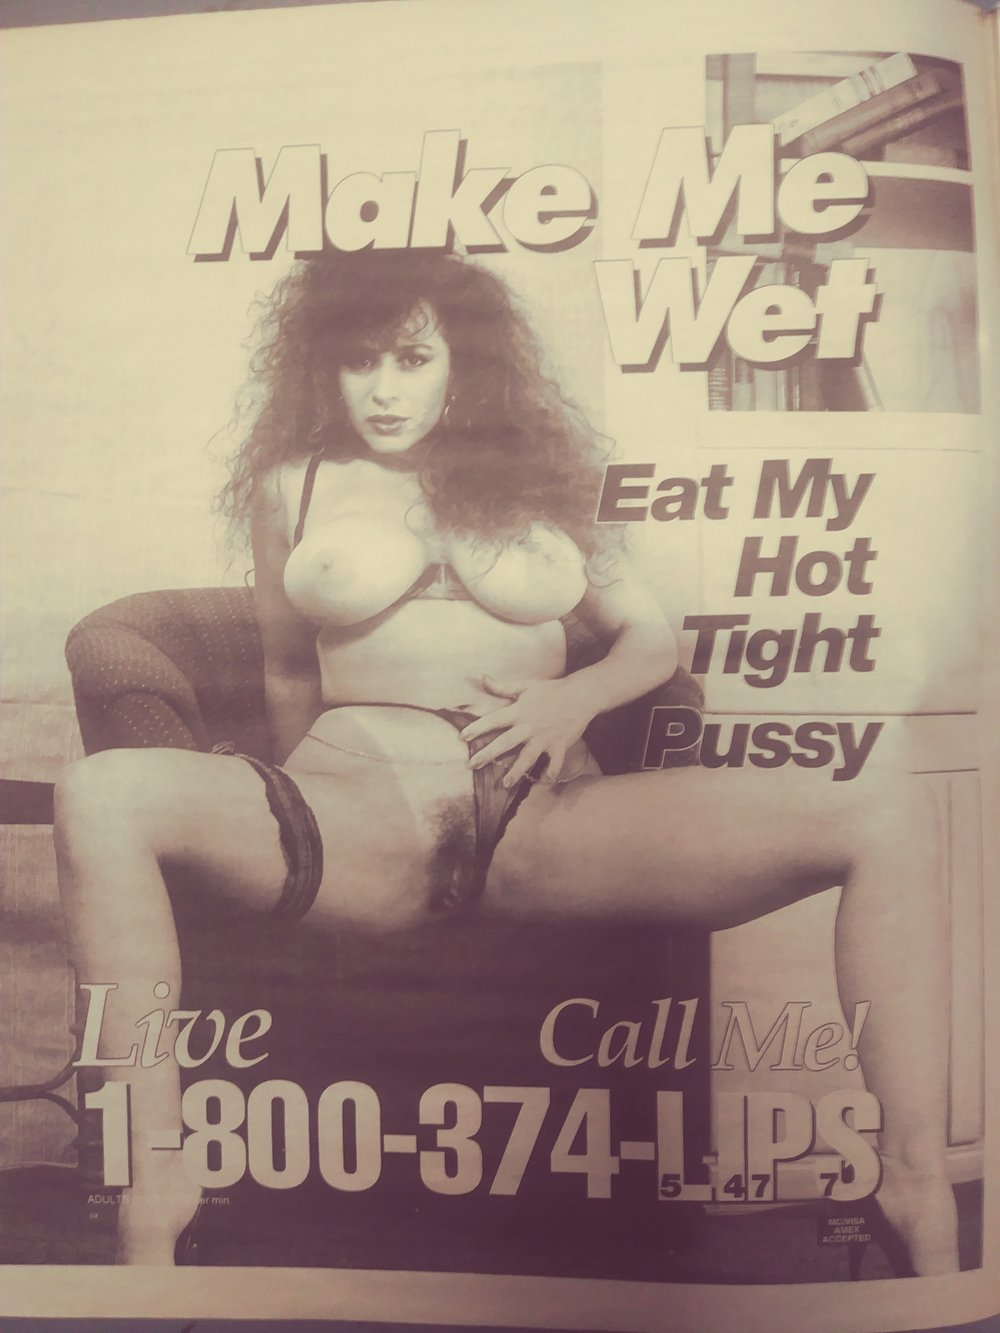 hairy escort phone sex ad from the 1970s